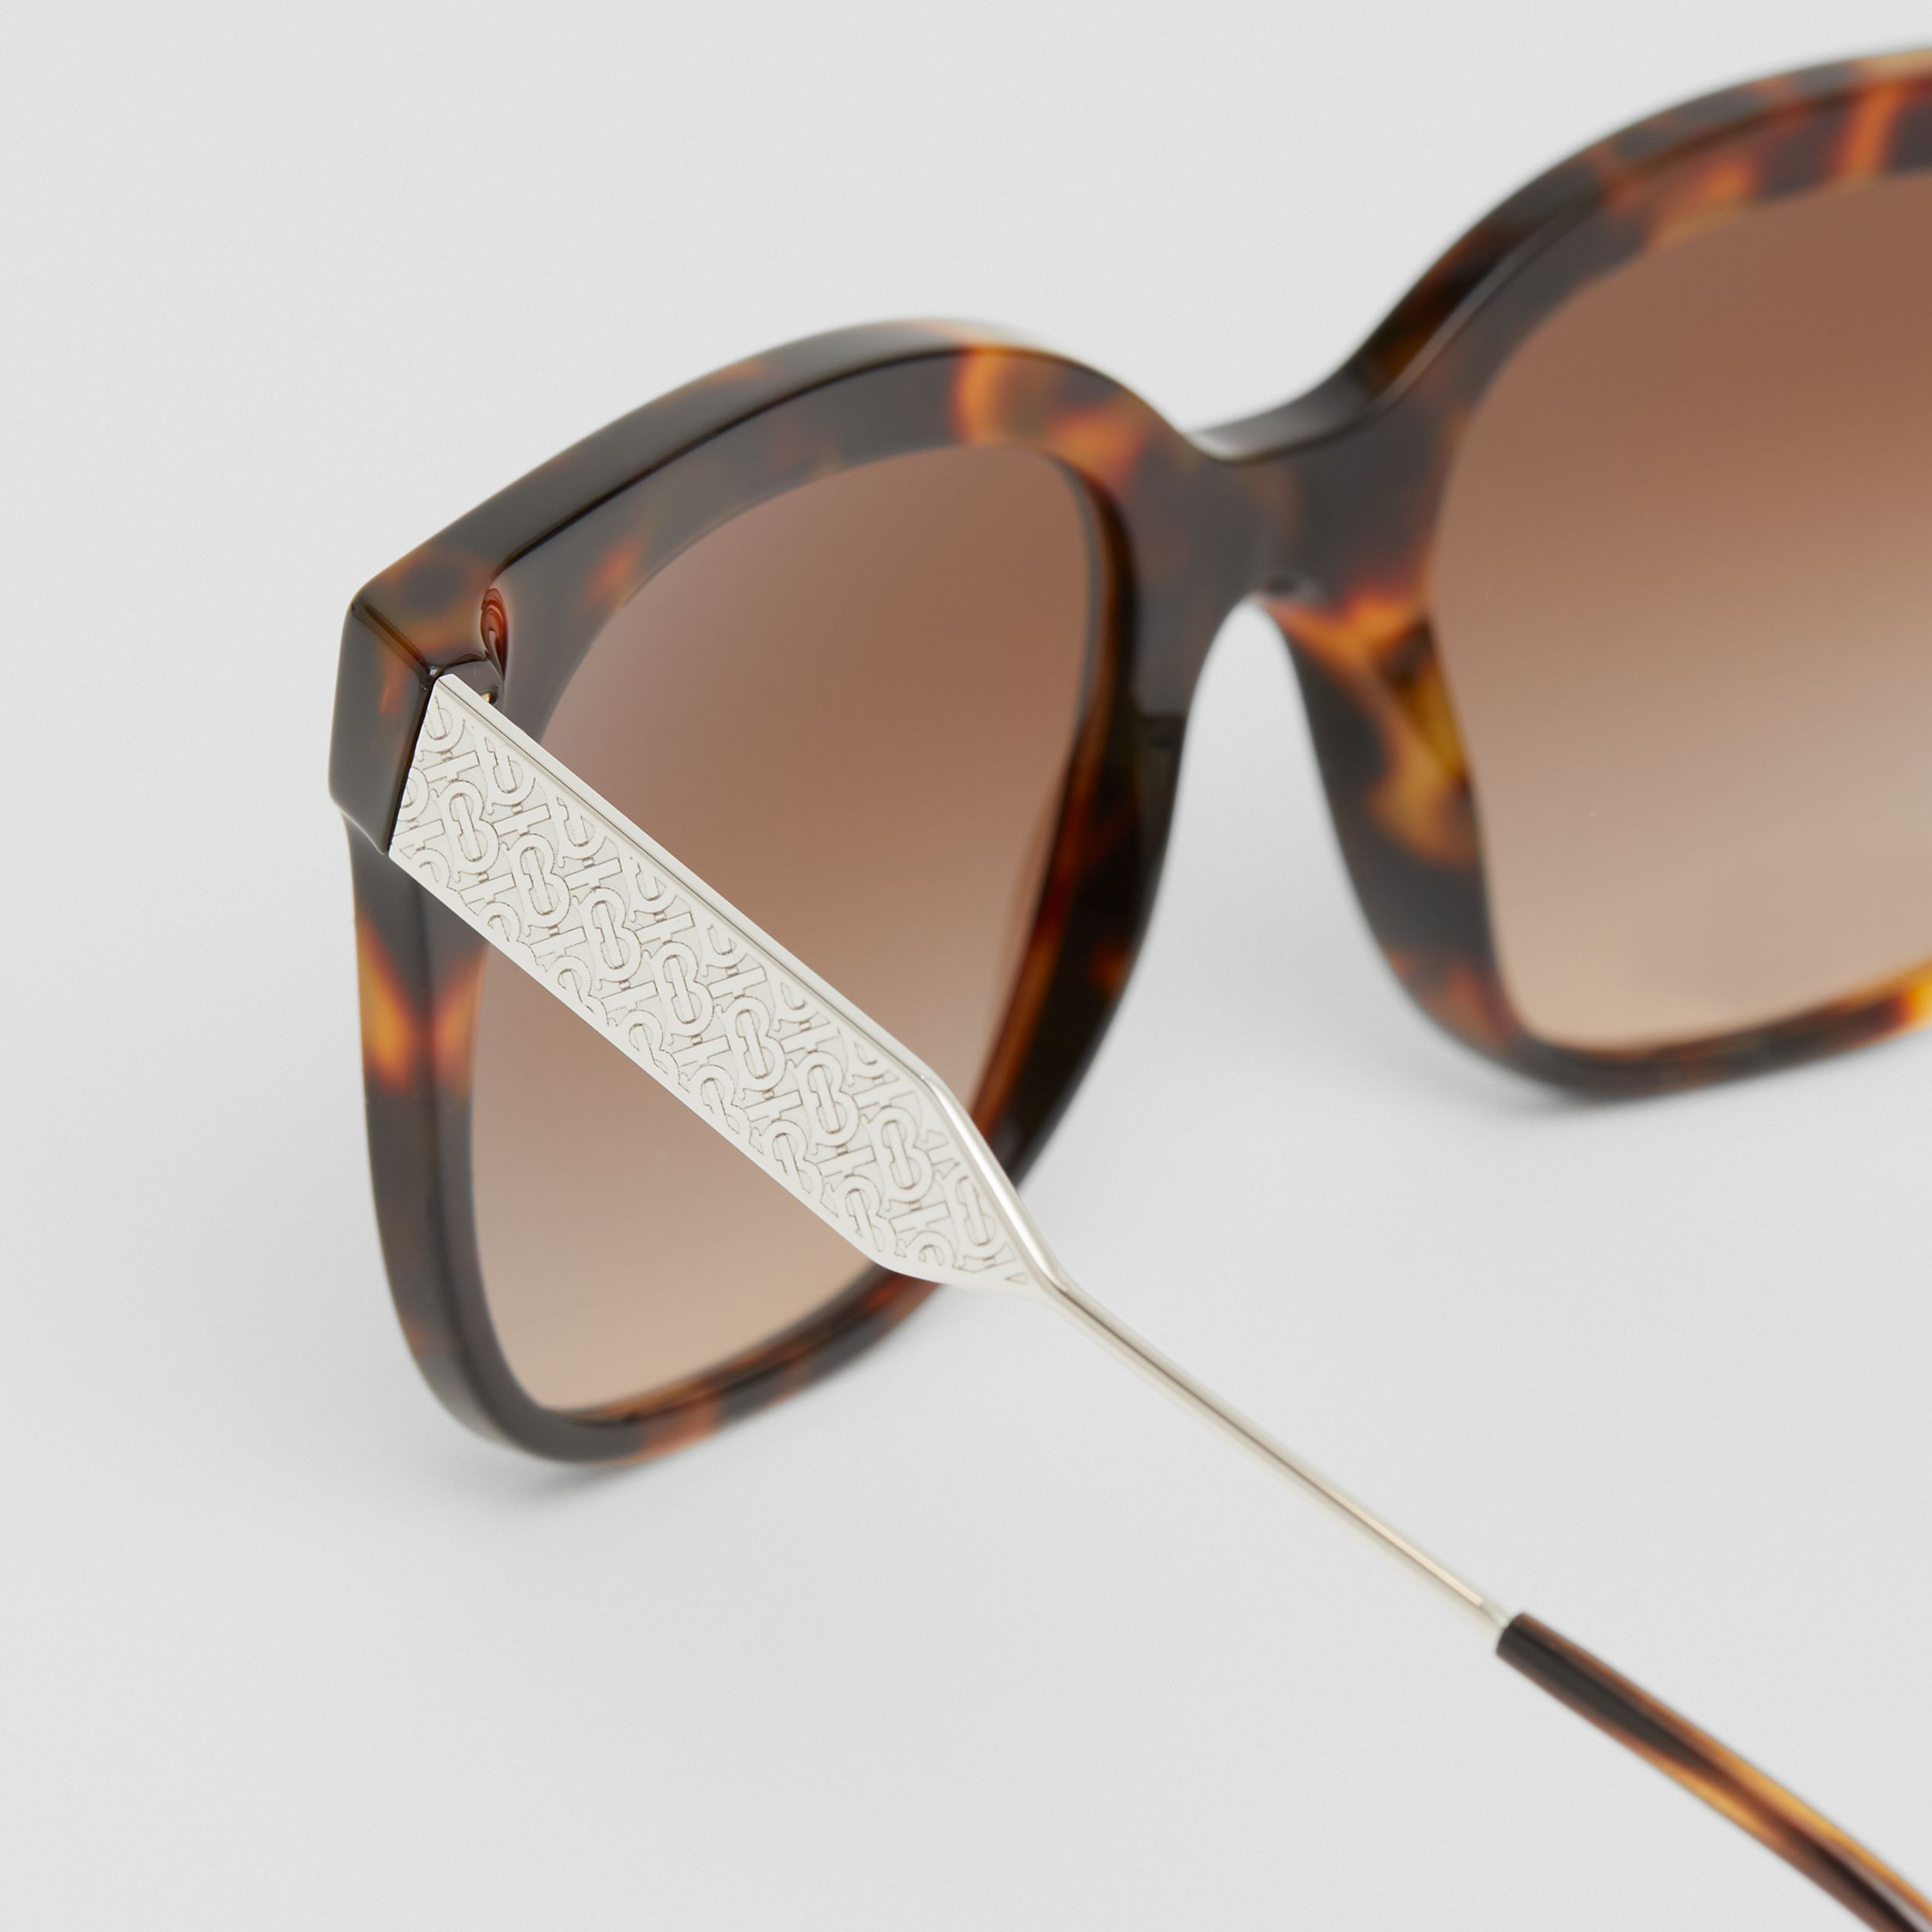 Butterfly Frame Sunglasses in Dark Amber Tortoiseshell - Women | Burberry - 2